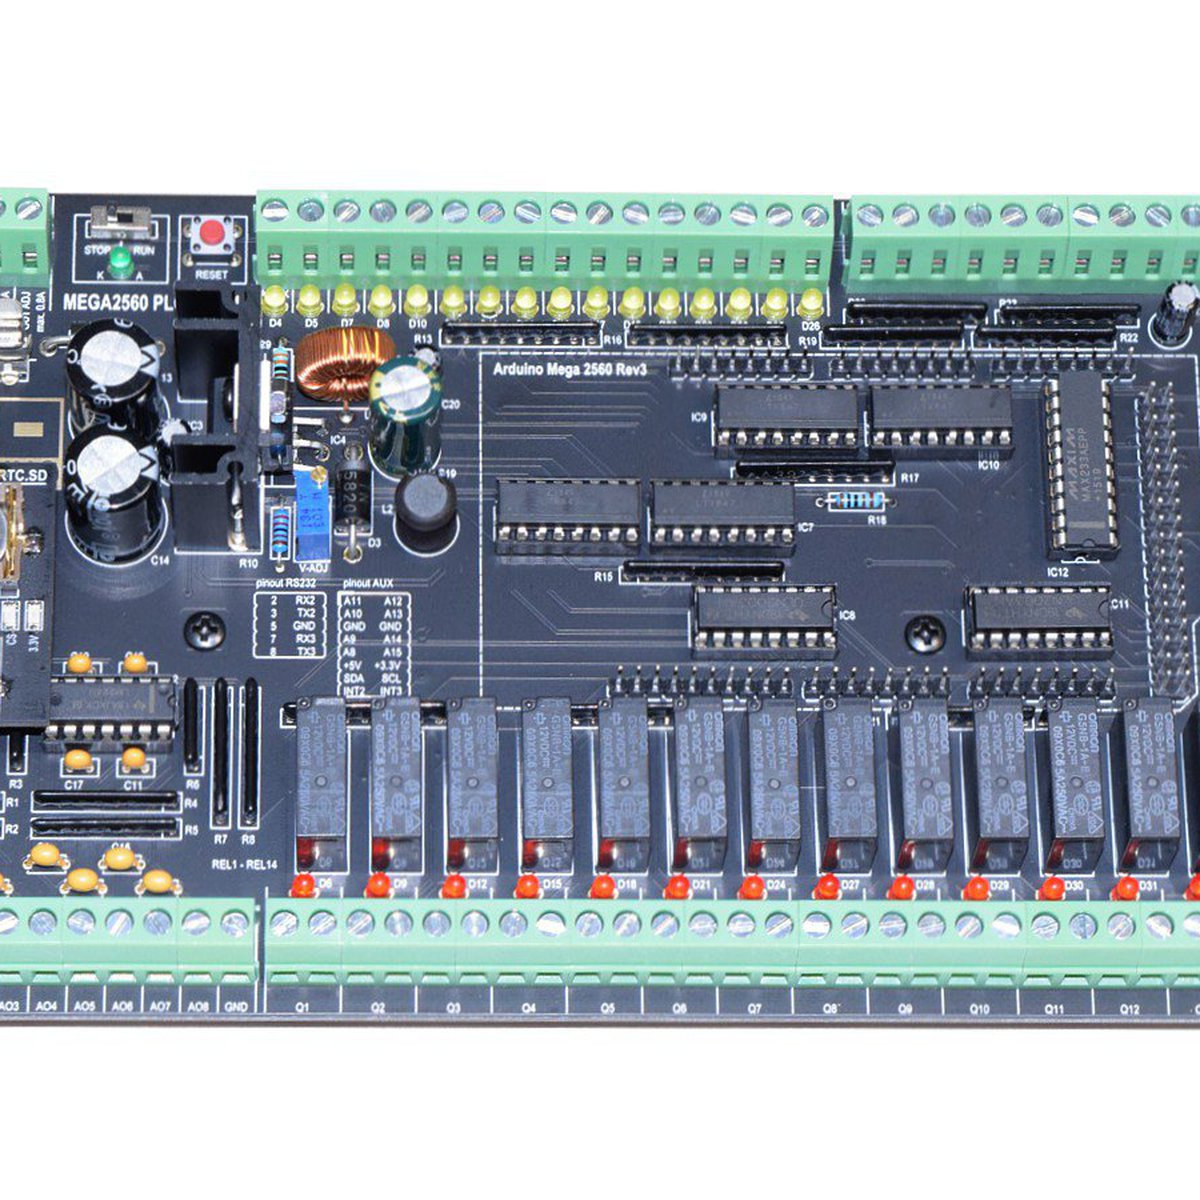 Full-Featured DIY PLC based on Arduino MEGA2560 from